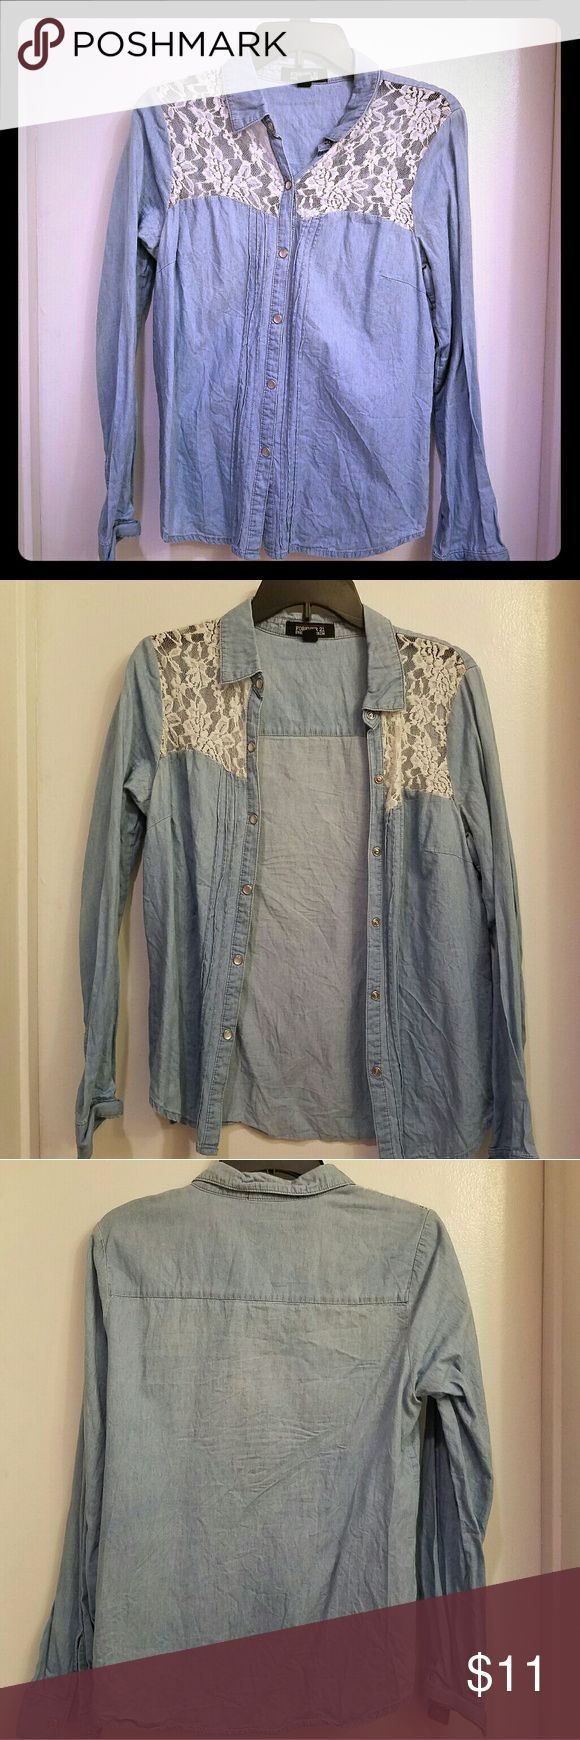 Denim Long Sleeve Top With Lace Gently used/ slight fray at the lace portion due to it being a stretchy material   Perfect for spring and summer!  If you normally wear a Medium, but are slightly more busty, this is a perfect top for you! Forever 21 Tops